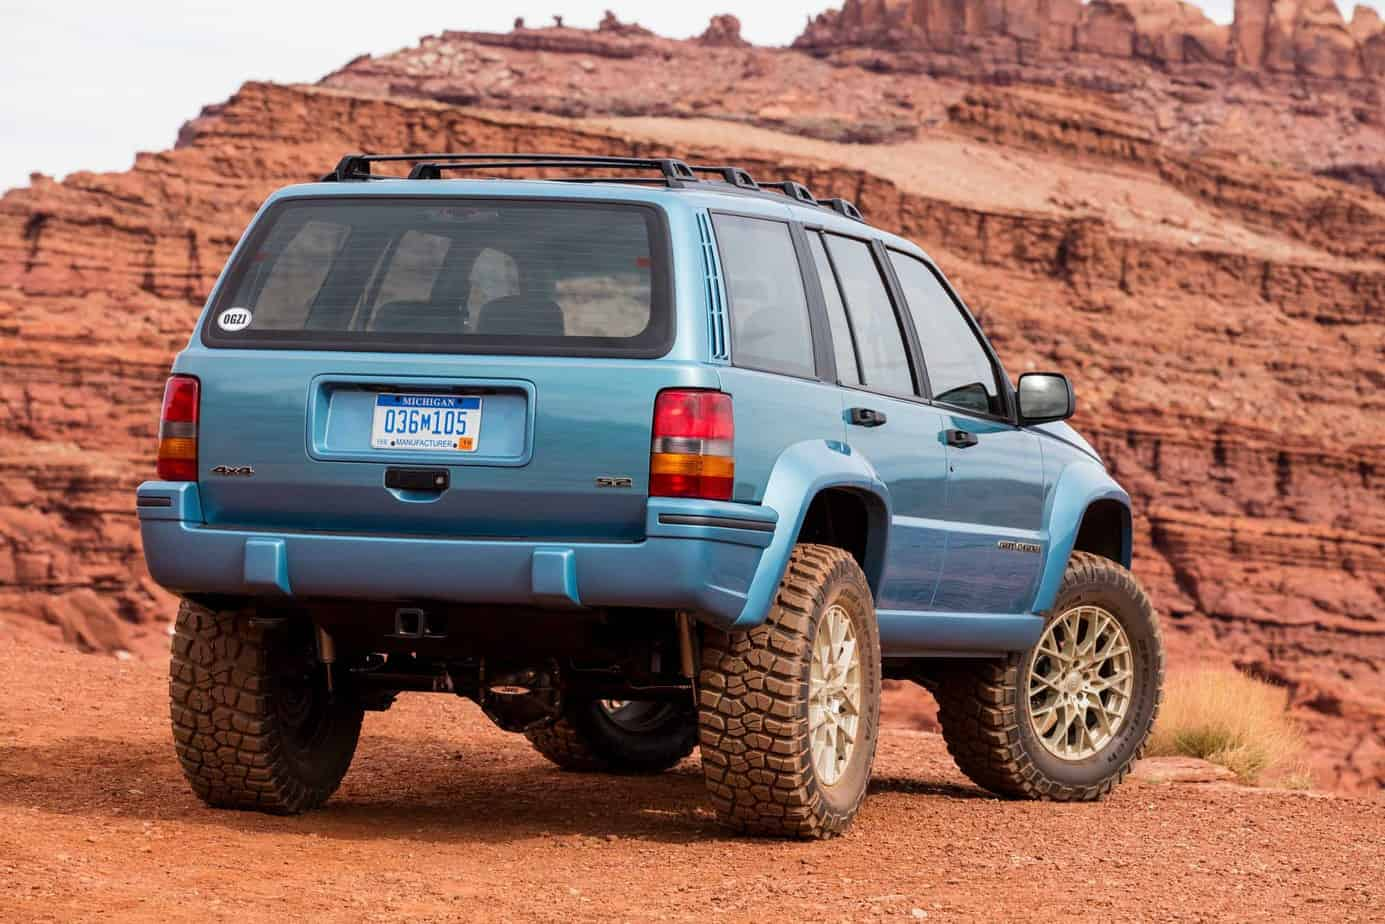 2017 Moab Jeep Concept Vehicles Released Expedition Portal